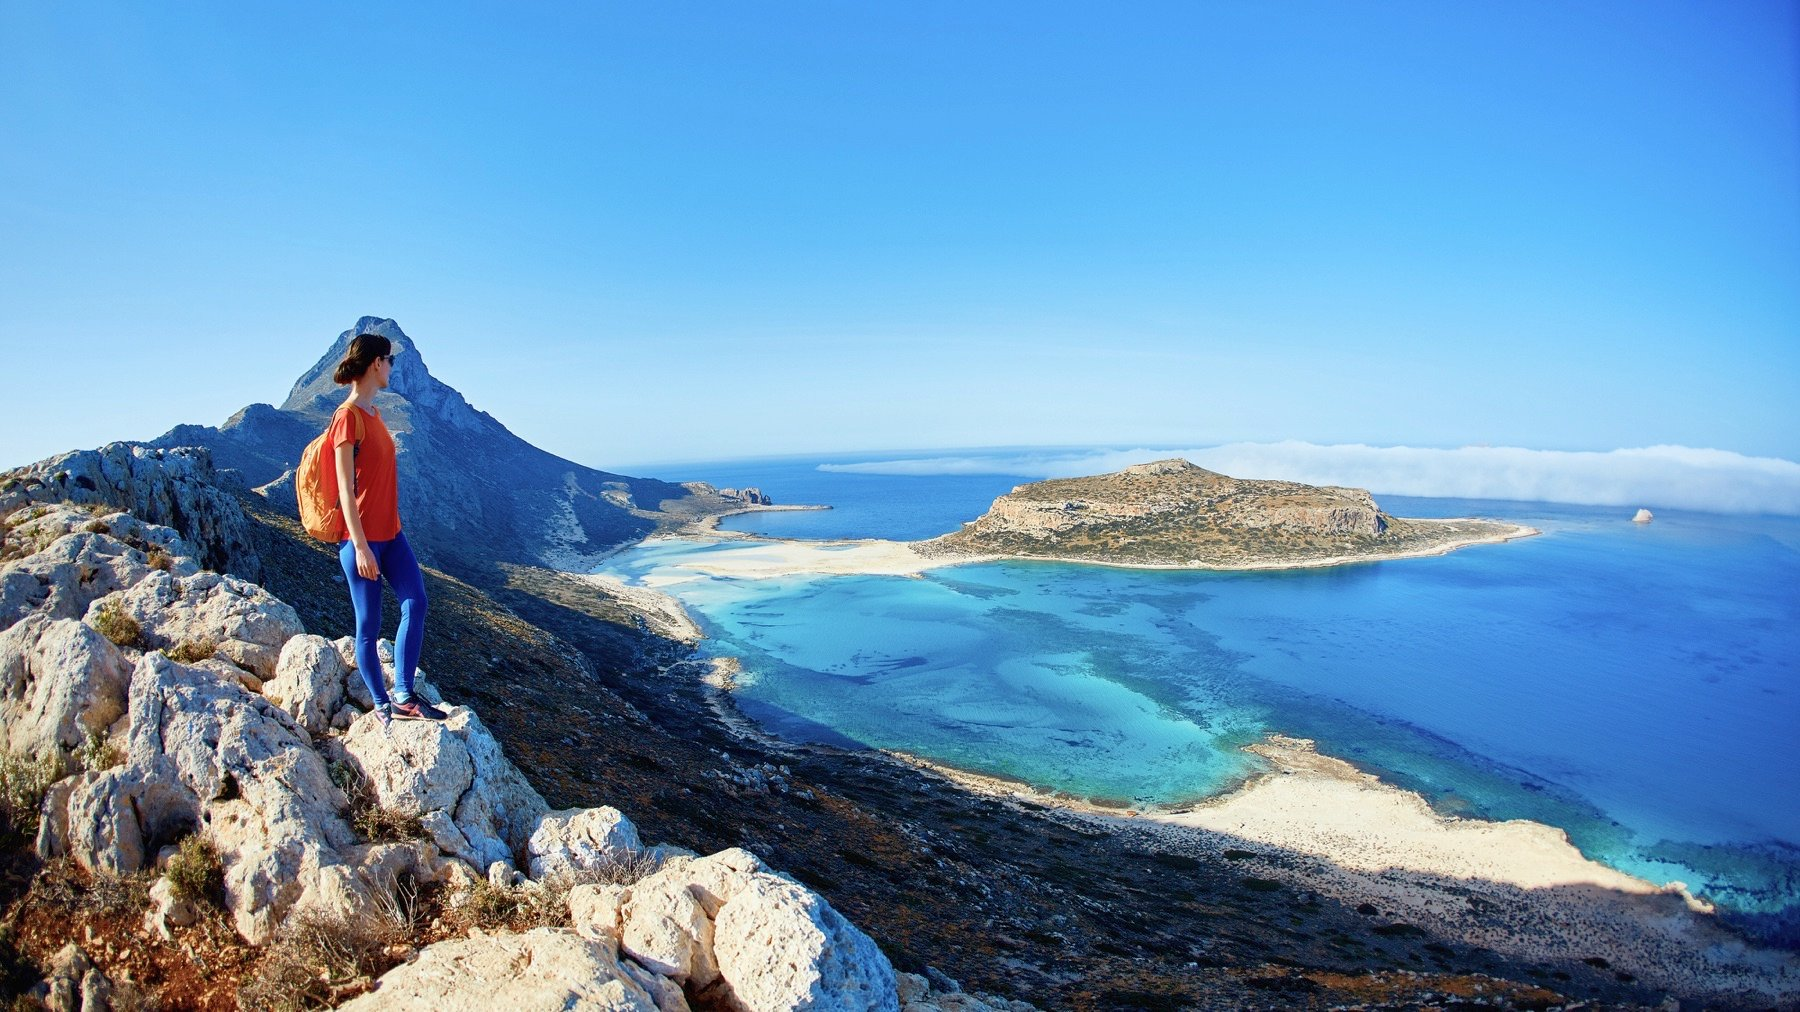 Crete, Greece: The Complete Travel Guide - Goats On The Road